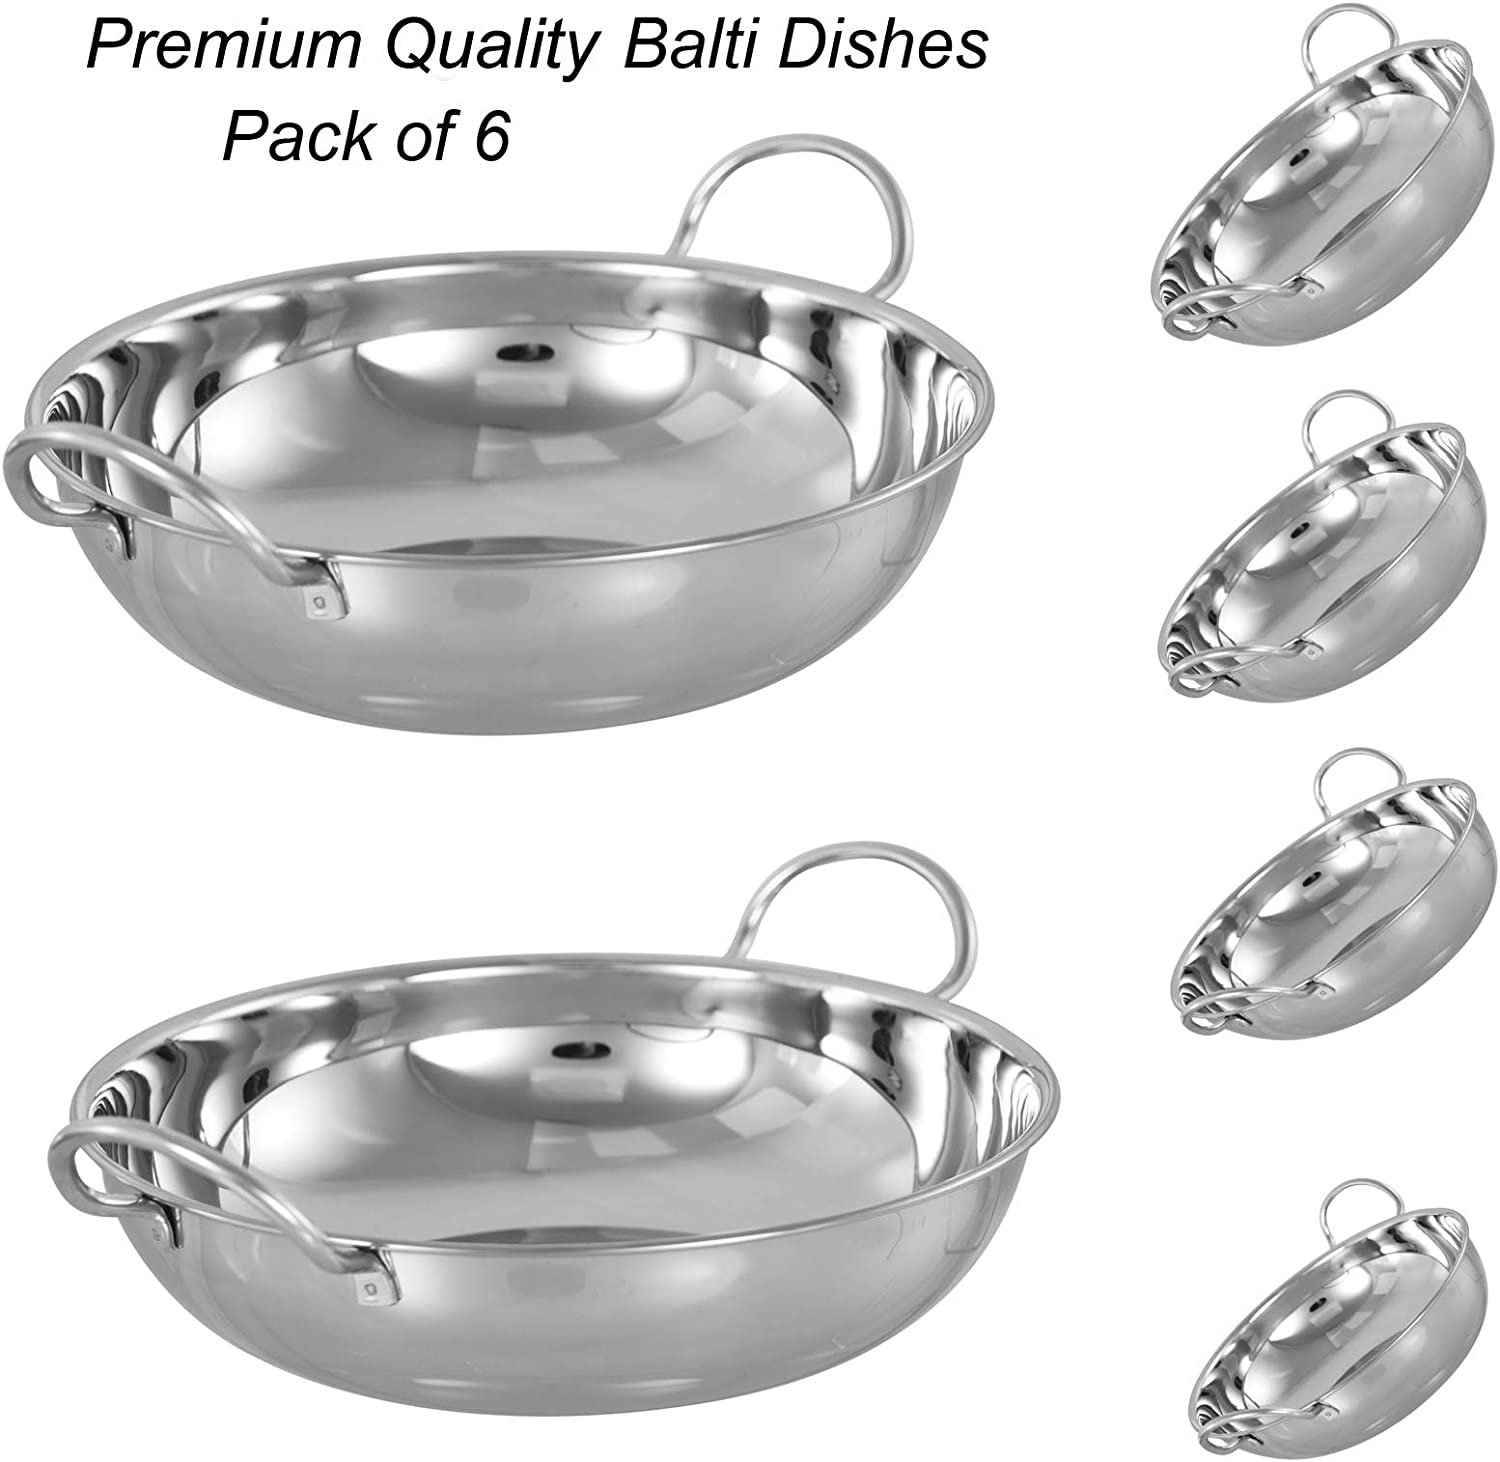 22 CM LONG 6 X Heavy Weight Stainless Steel Deep Oval Curry Dish BOWLS PLATES